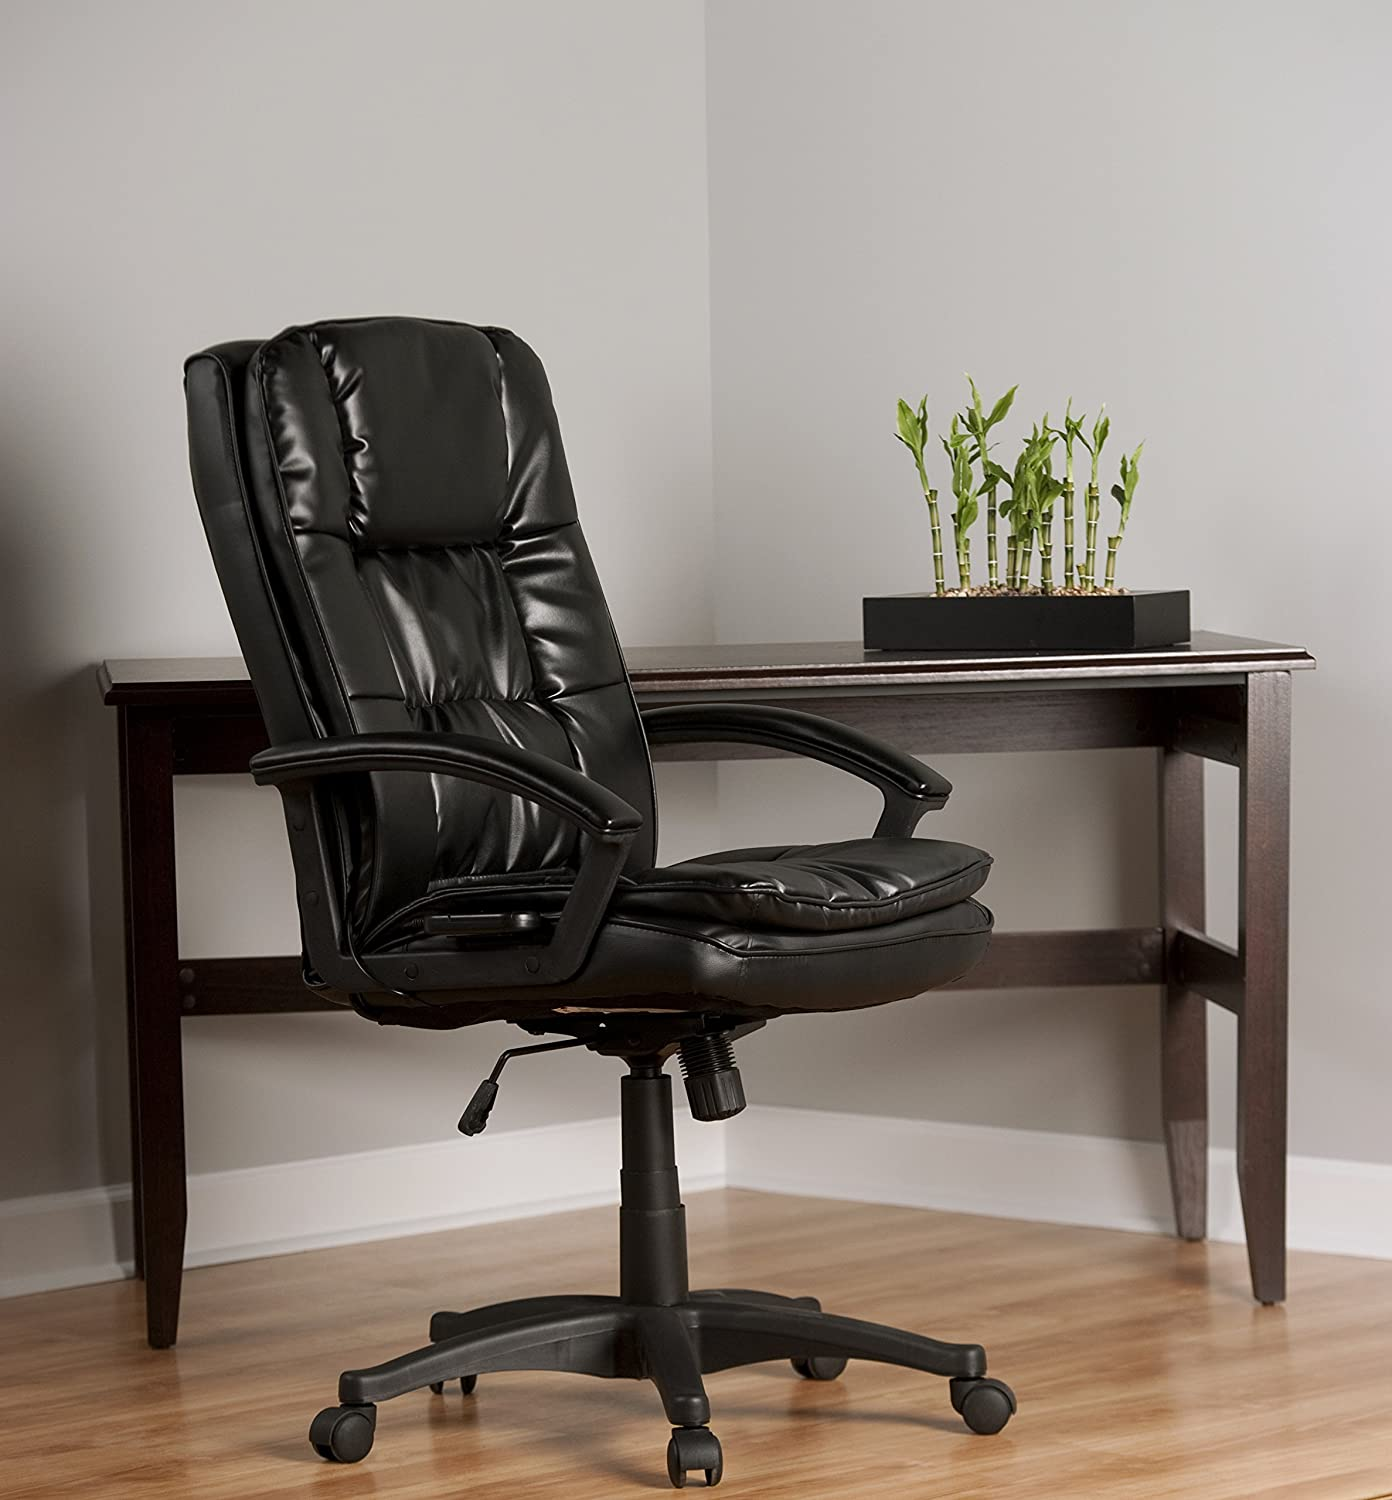 most comfortable computer chair. Amazon.com: Comfort Products 60-6810 Leather Executive Chair With 5-Motor Massage, Black: Health \u0026 Personal Care Most Comfortable Computer M